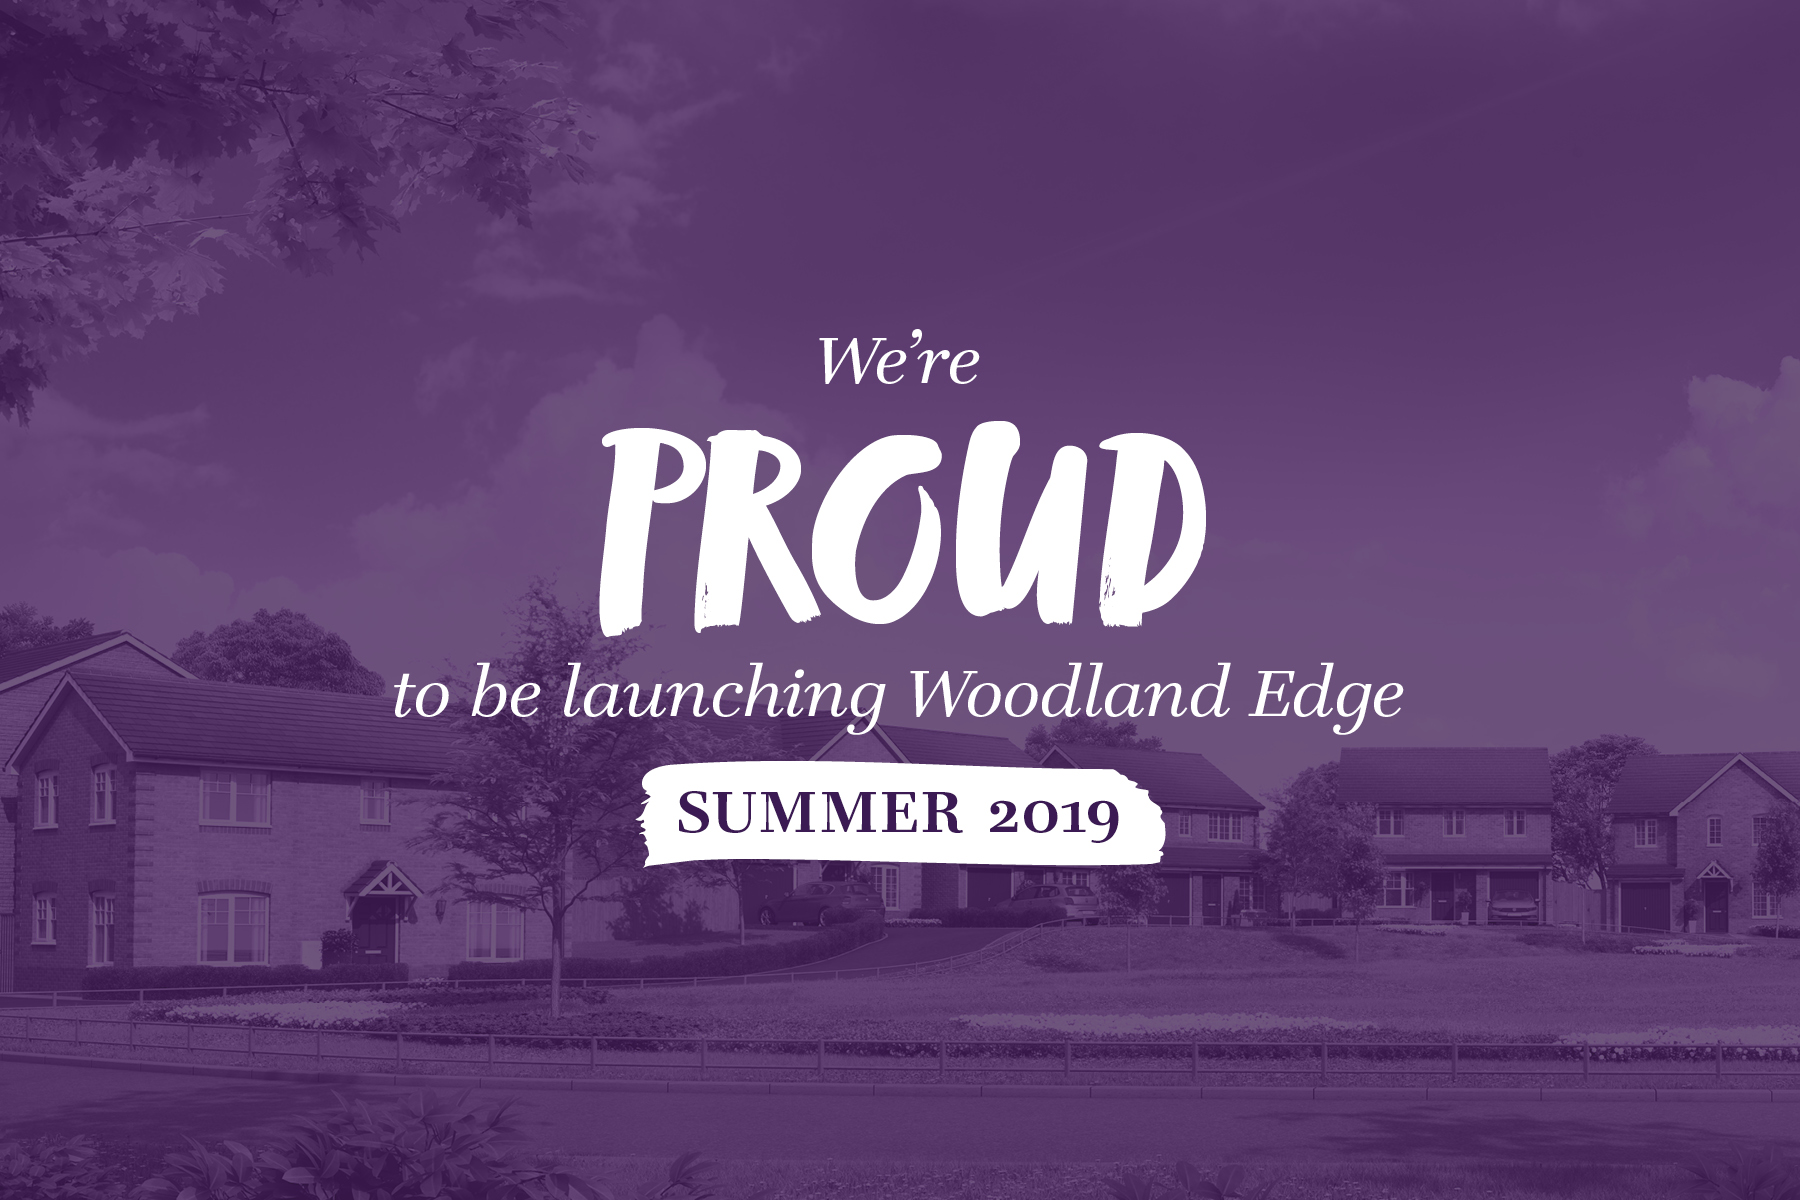 Woodland Edge - Launching Summer 19